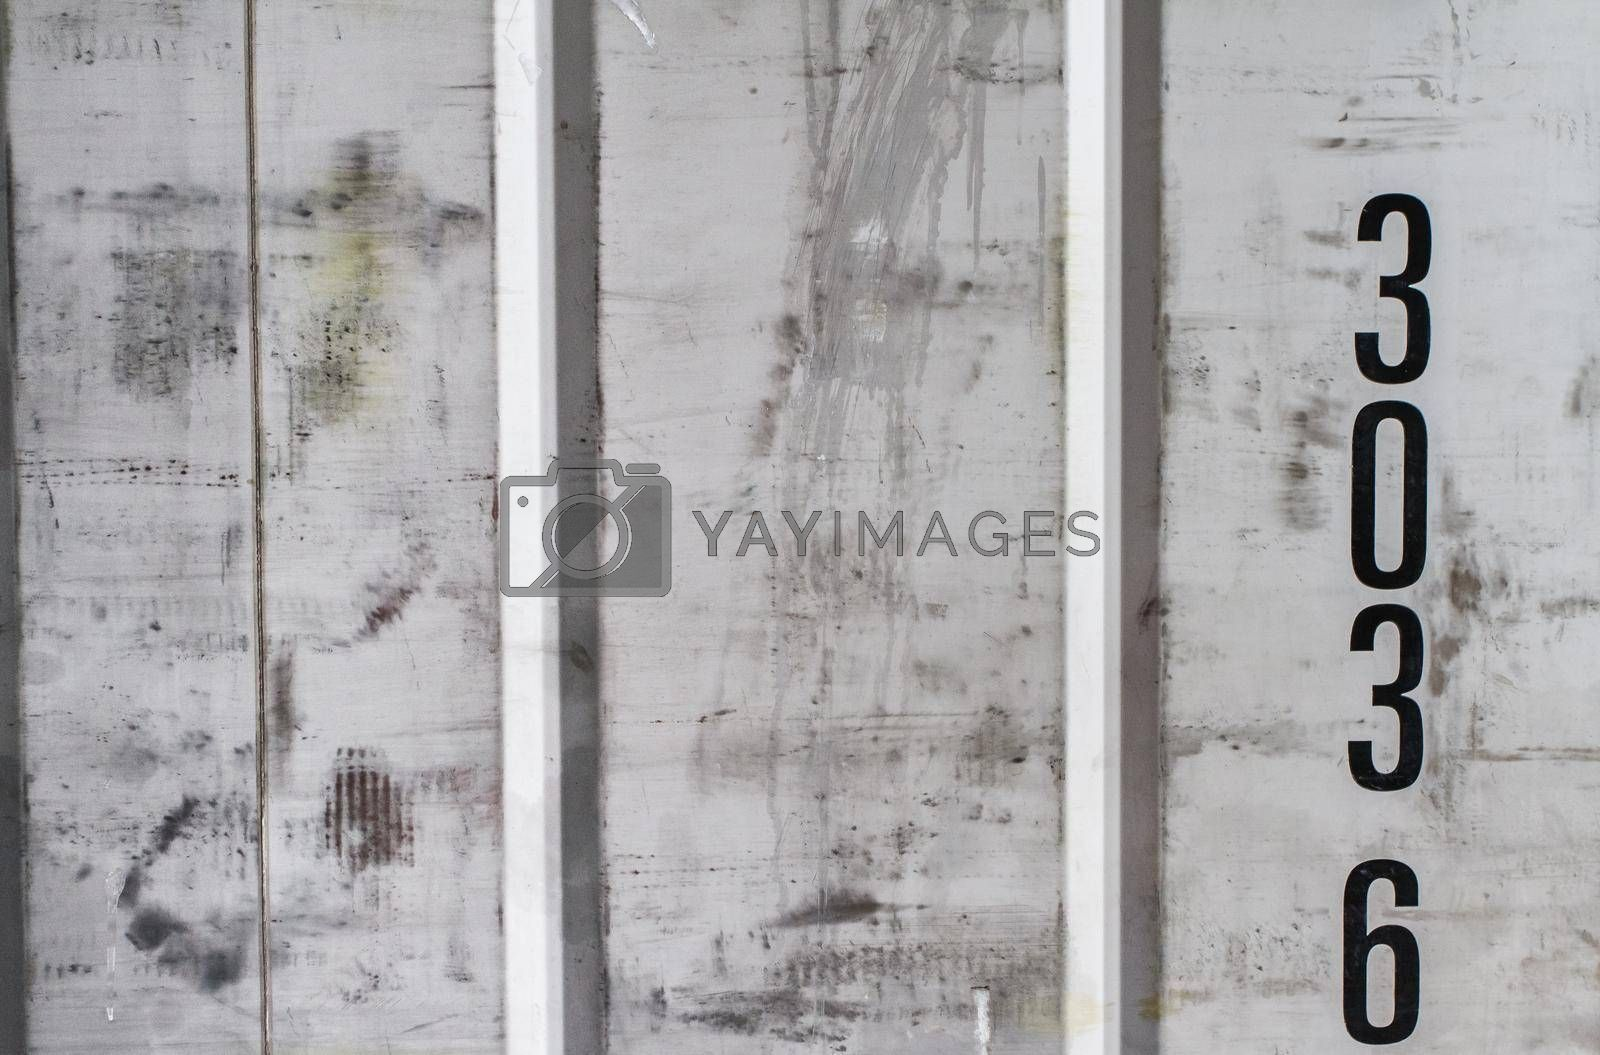 Aluminum wiped sheet of metal with numeric designations. Figures on metal.